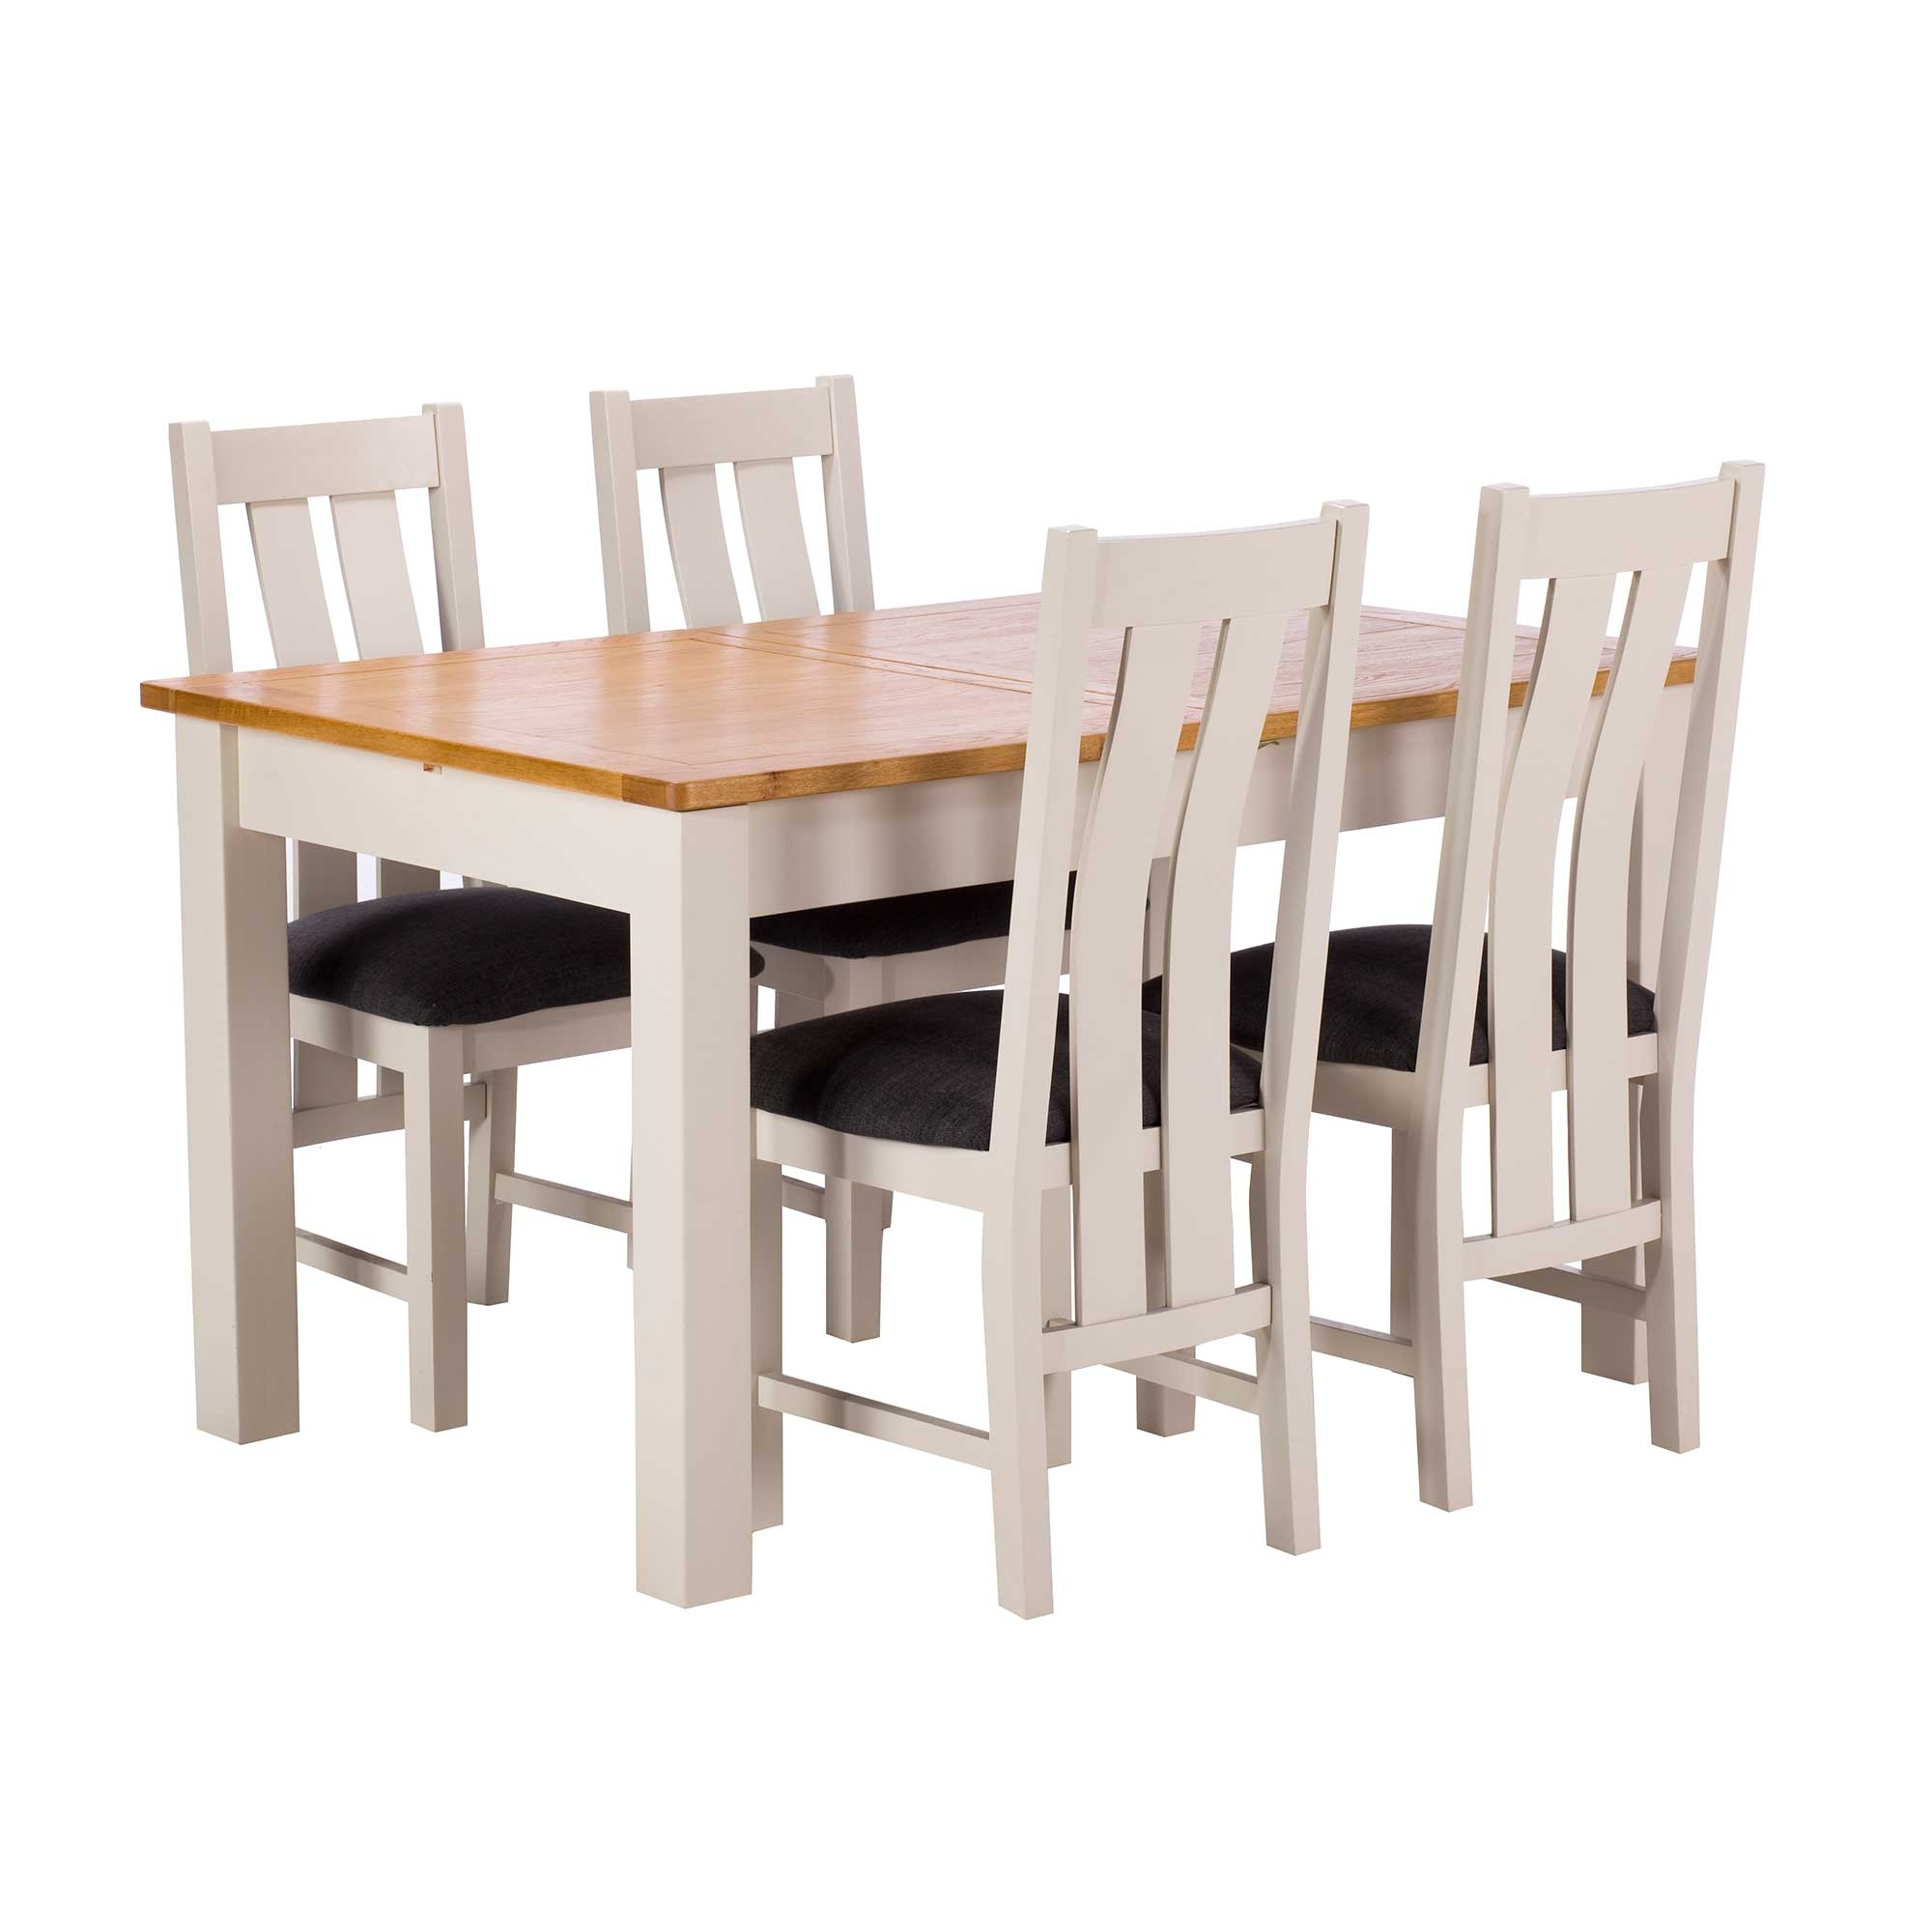 Most Current Extending Dining Sets Intended For Eskdale Extending Dining Table And 4 Chairs, Linen (Gallery 24 of 25)